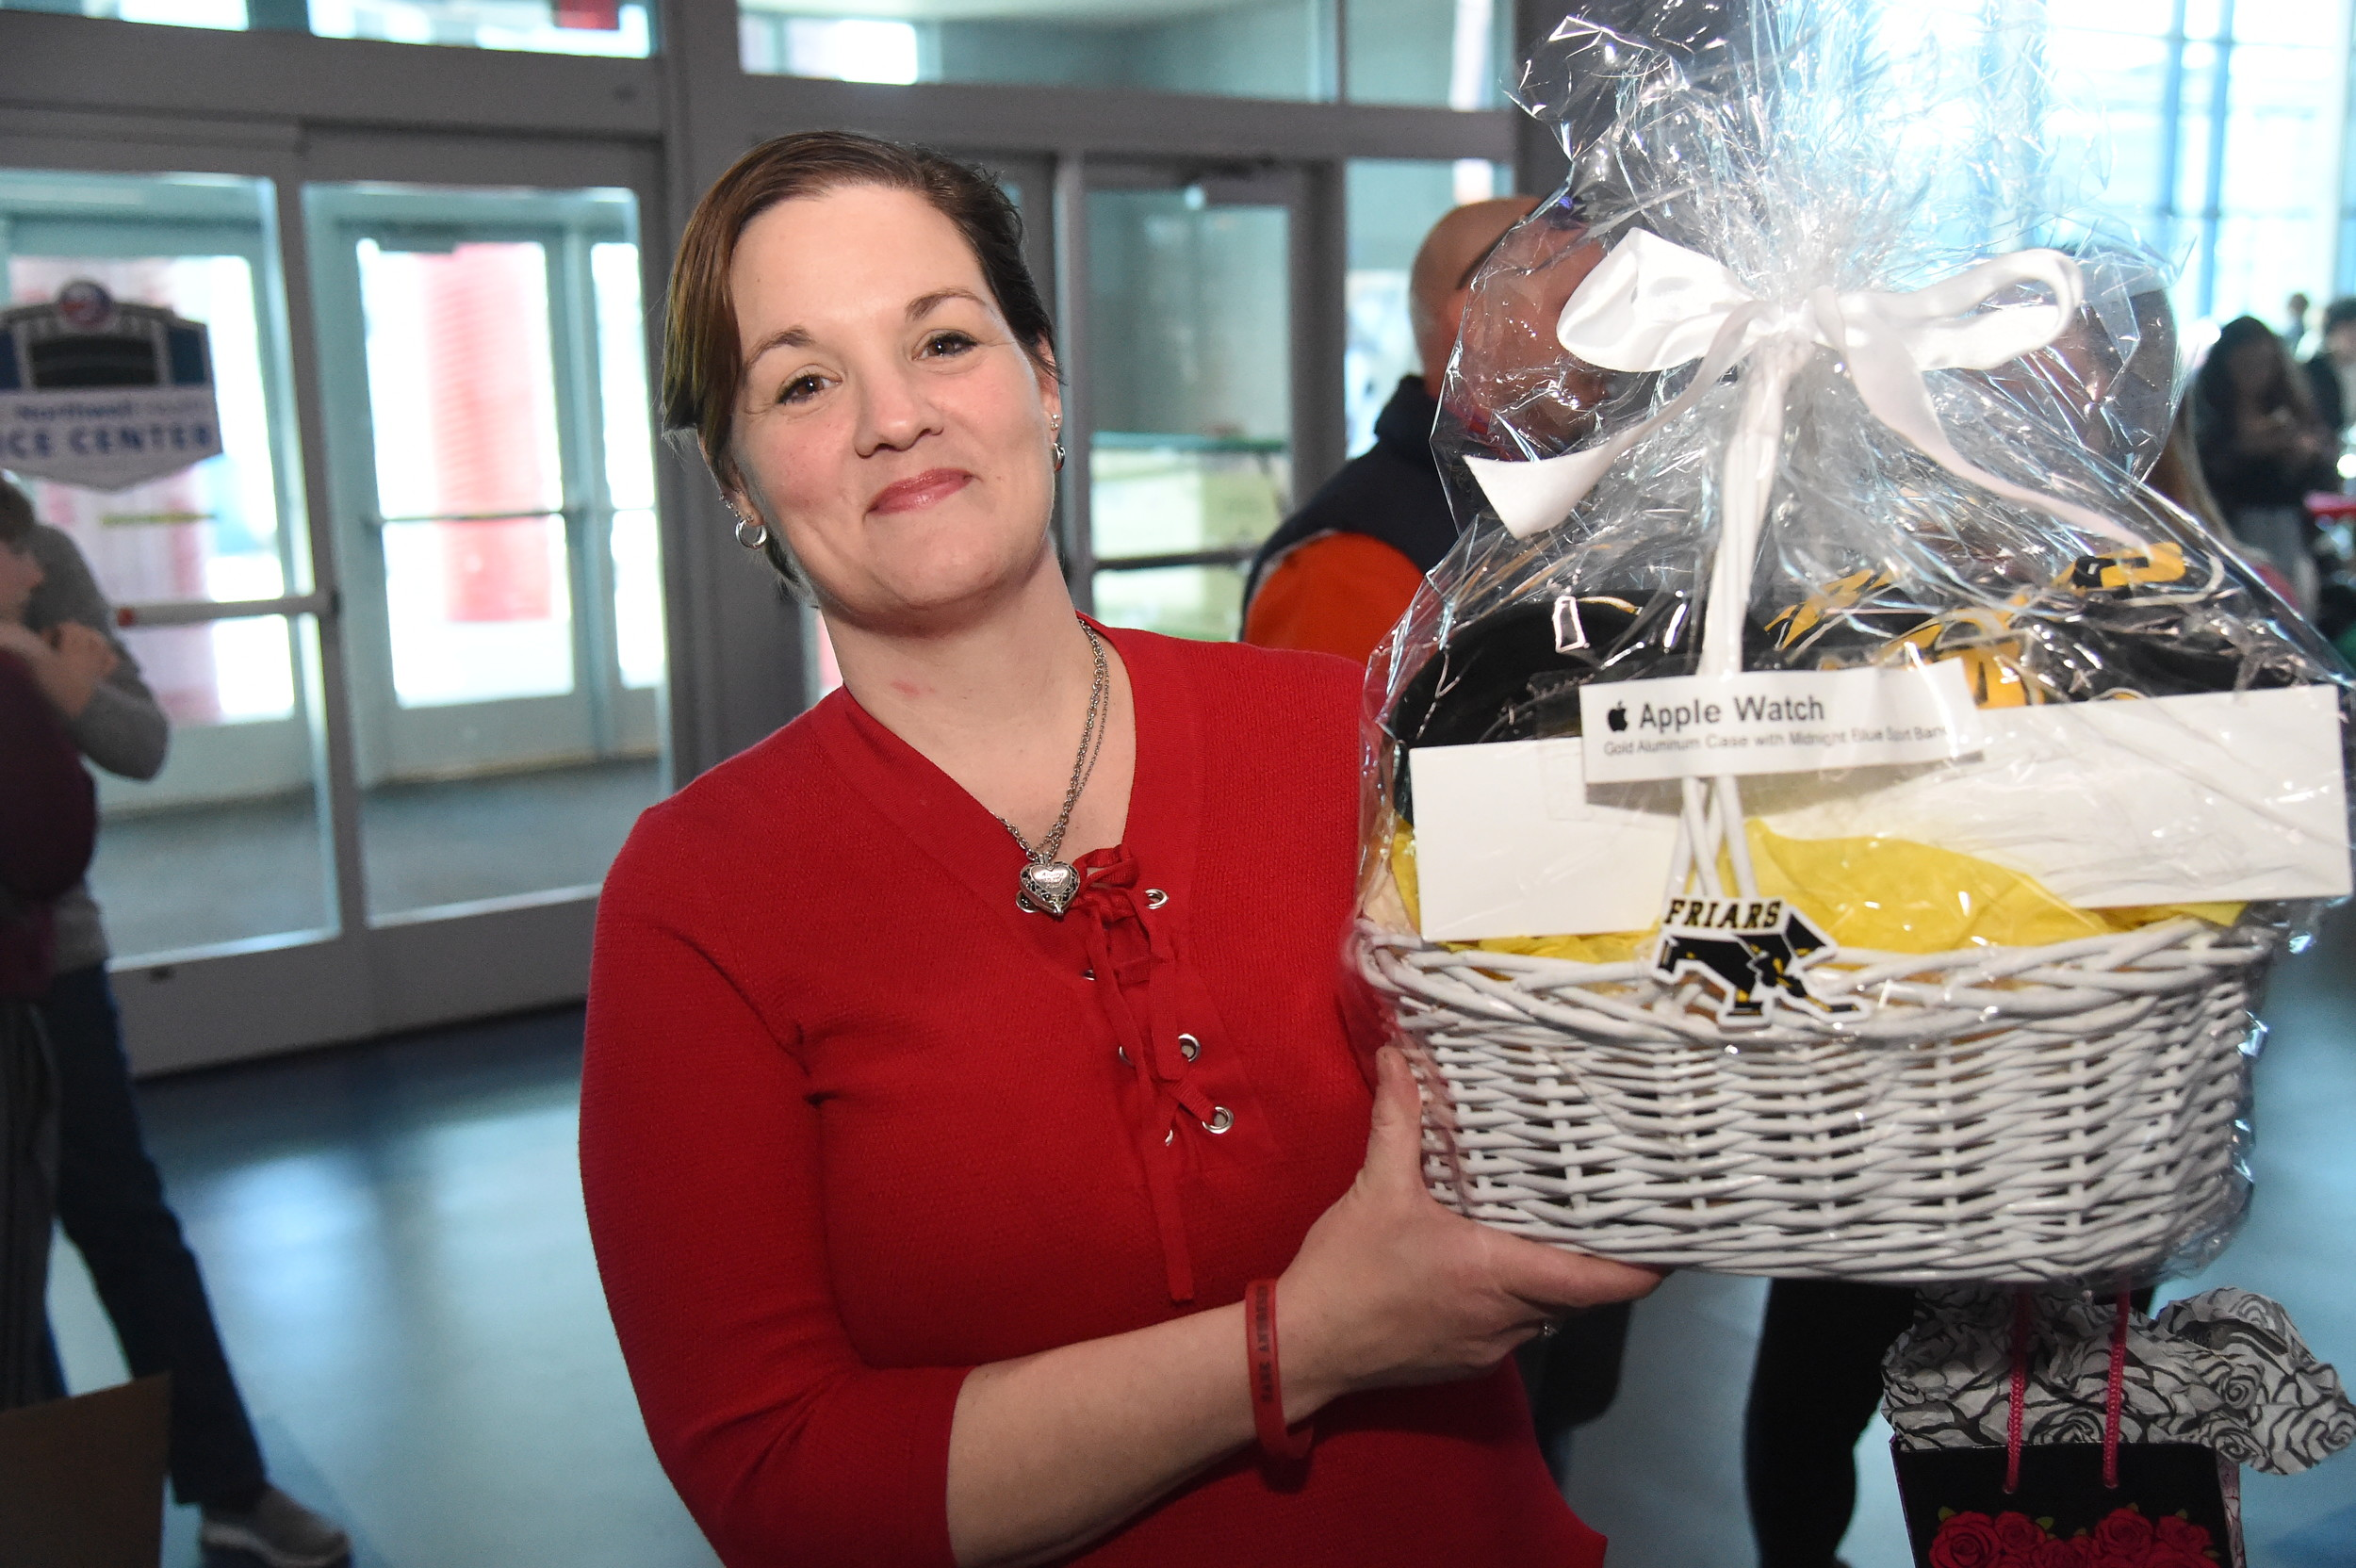 Kerry Boring received a gift basket donated by St Anthony's